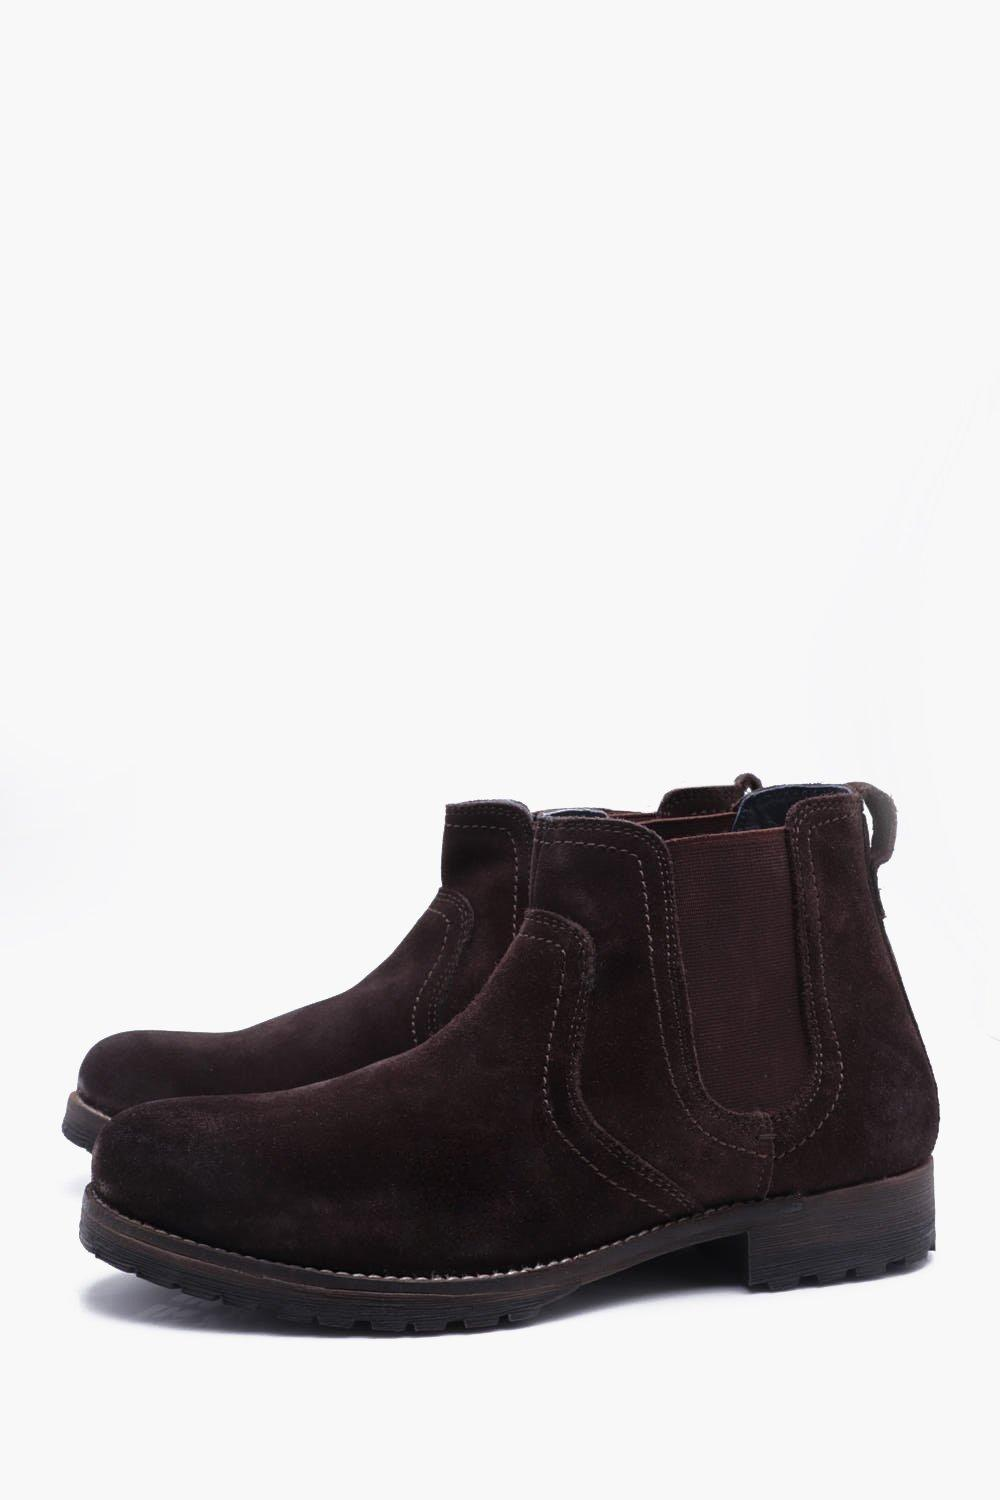 boohooMAN brown Cleated Suede Chelsea Boots